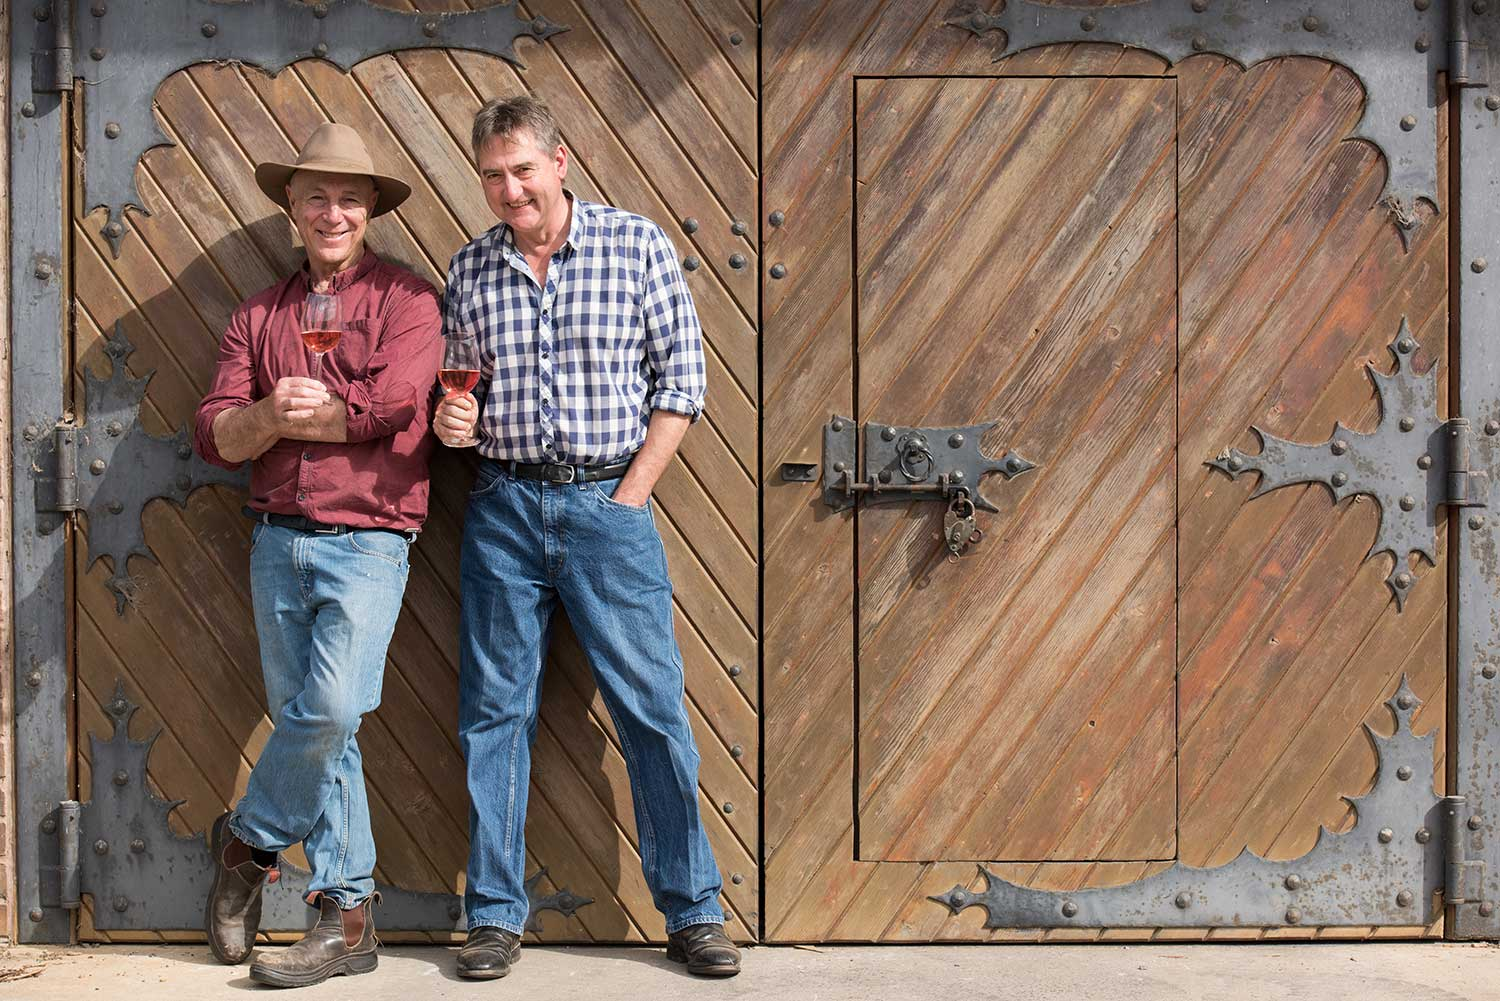 Hahndorf Hill co-owners and partners Larry Jacobs (L) & Marc Dobson (R)